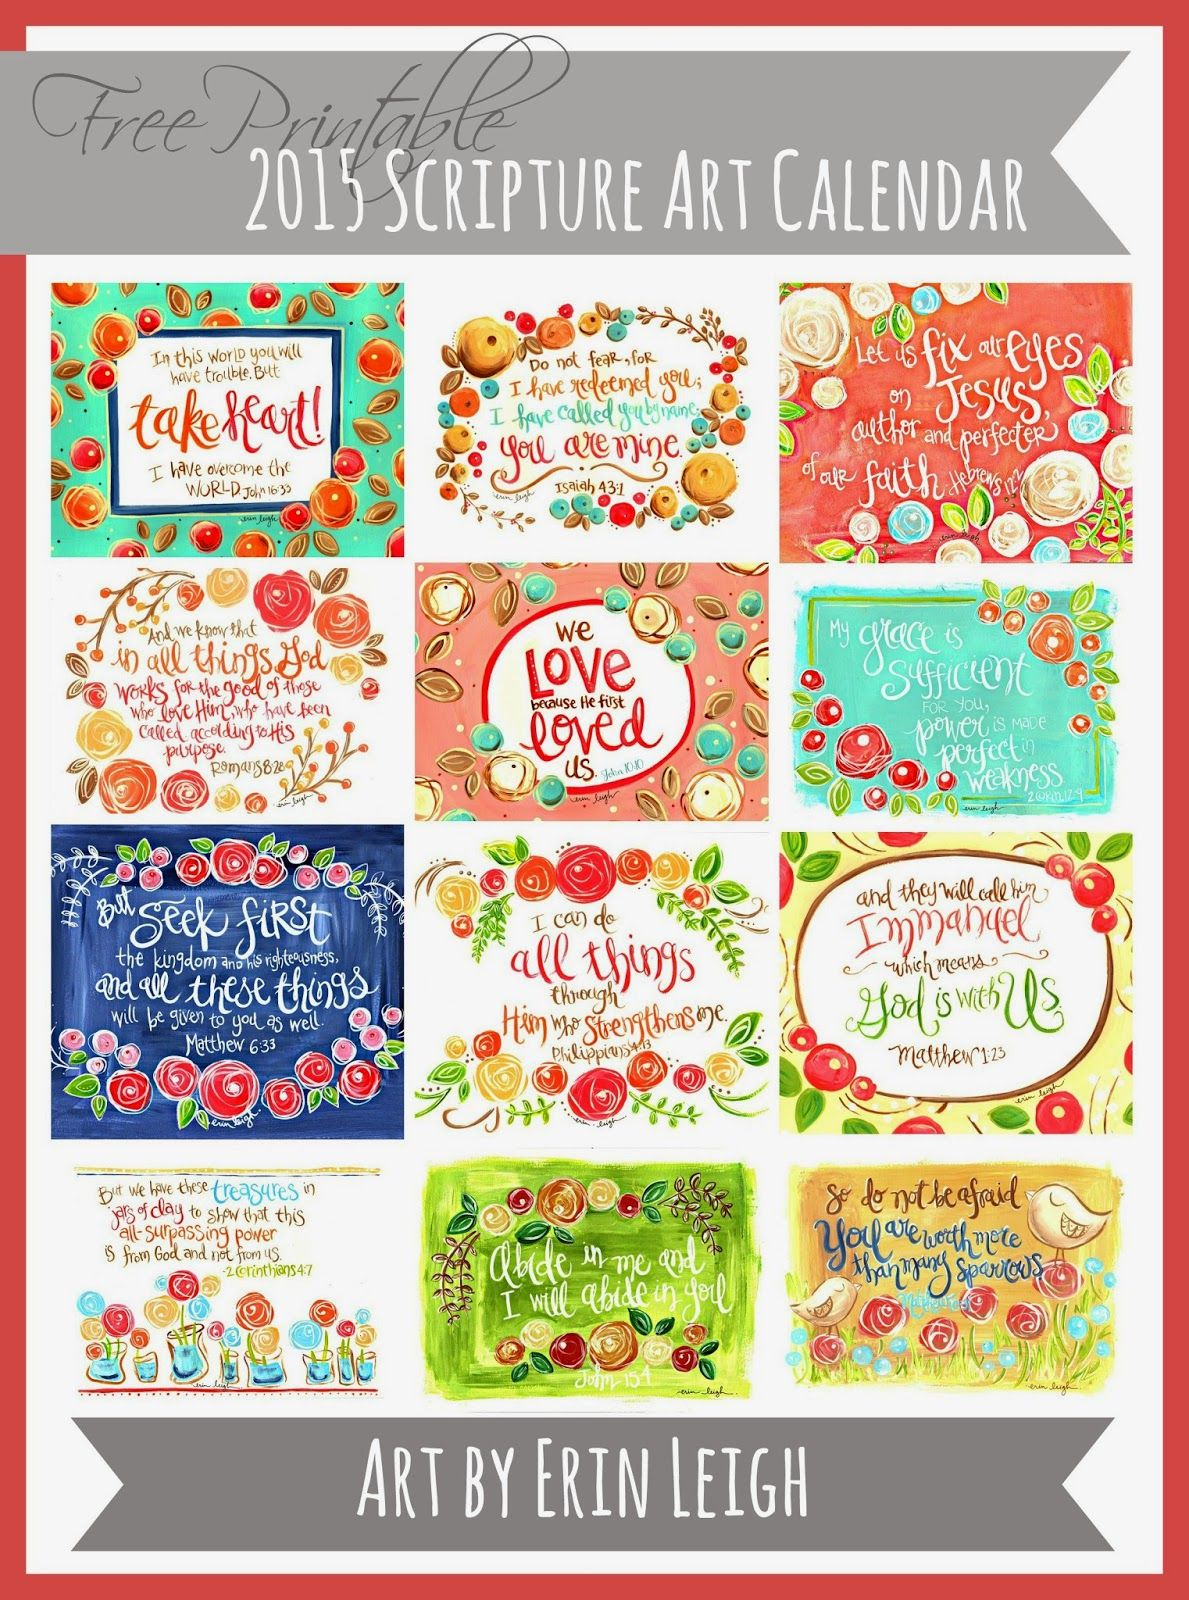 2015 Free Printable Calendar | Lolly Jane | Features | Pinterest - Free Printable Christian Art